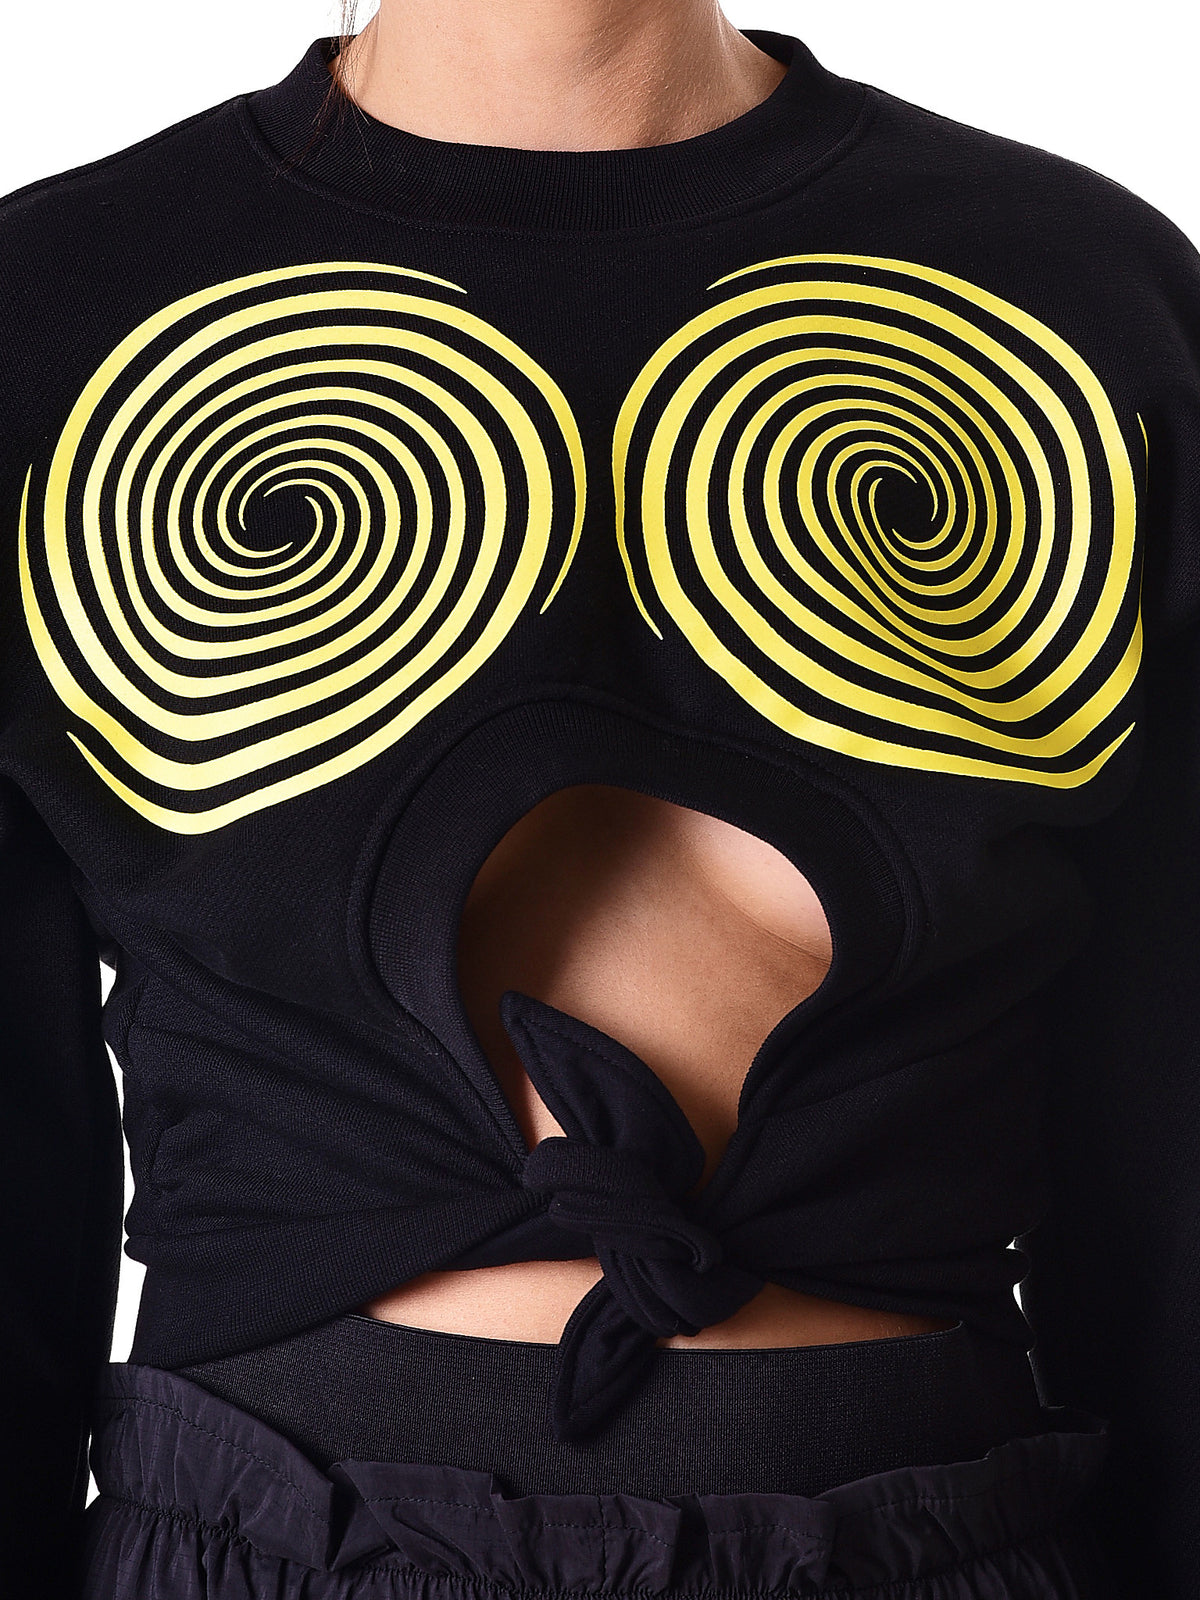 Cropped Vented Sweater (WSWEAT3P-S12-CC120-BLACK-YELLO)